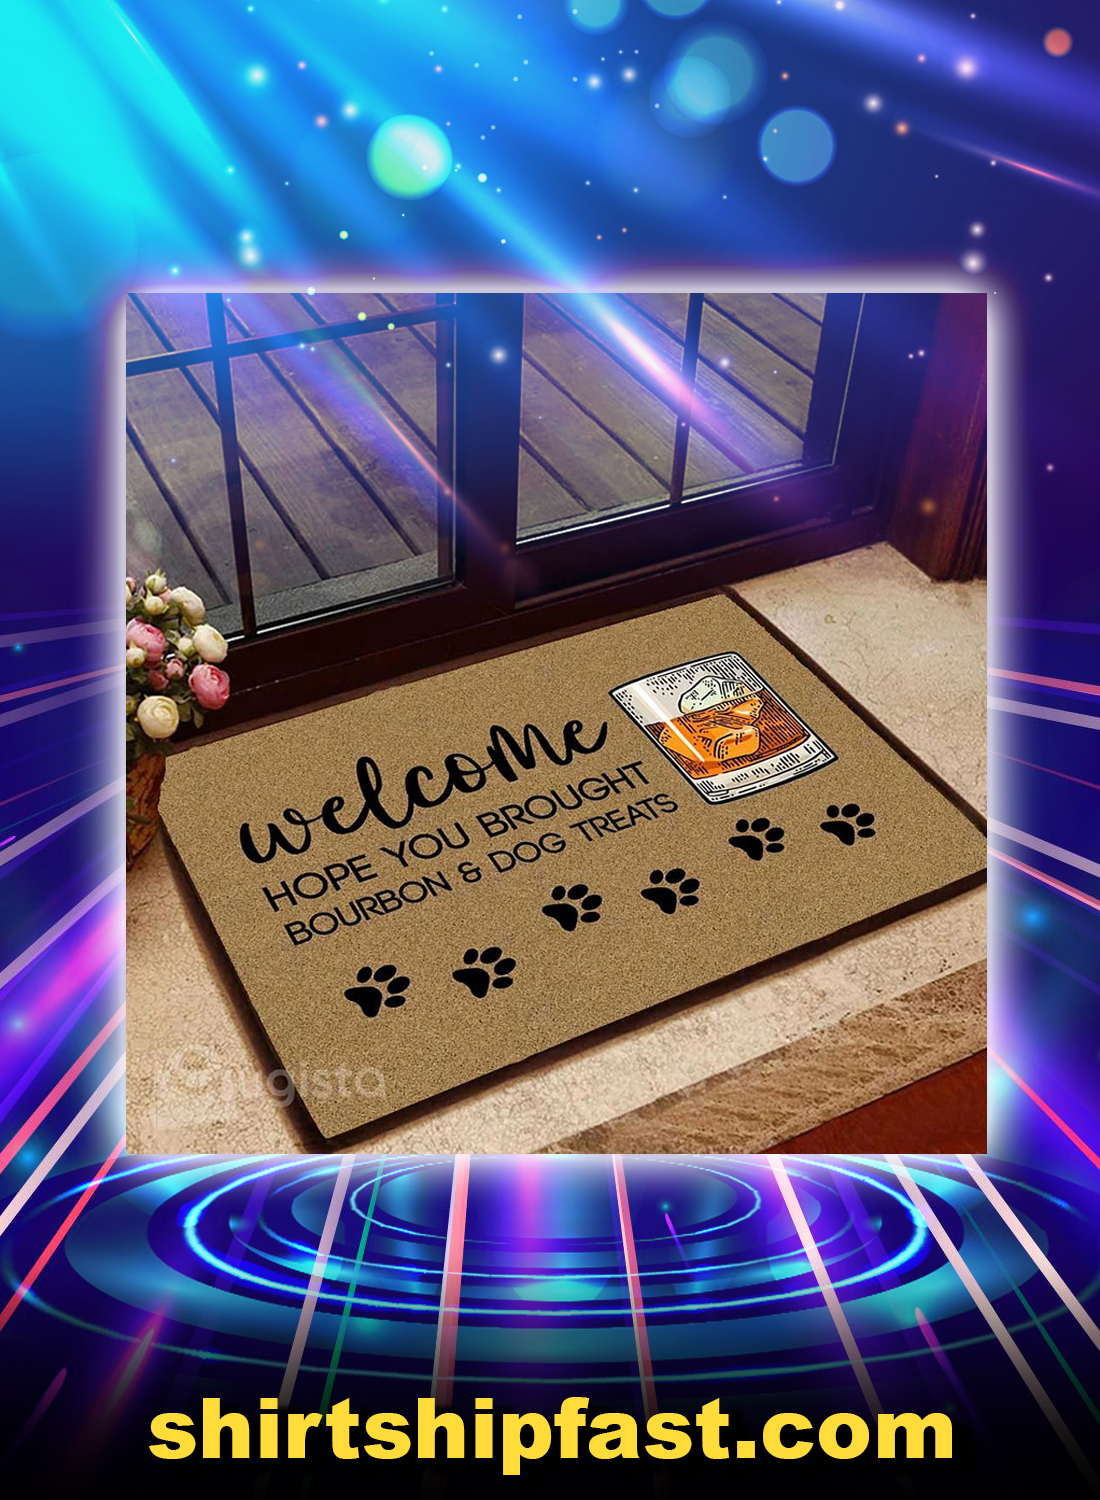 Welcome hope you brought bourbon and dog treats doormat - Picture 1